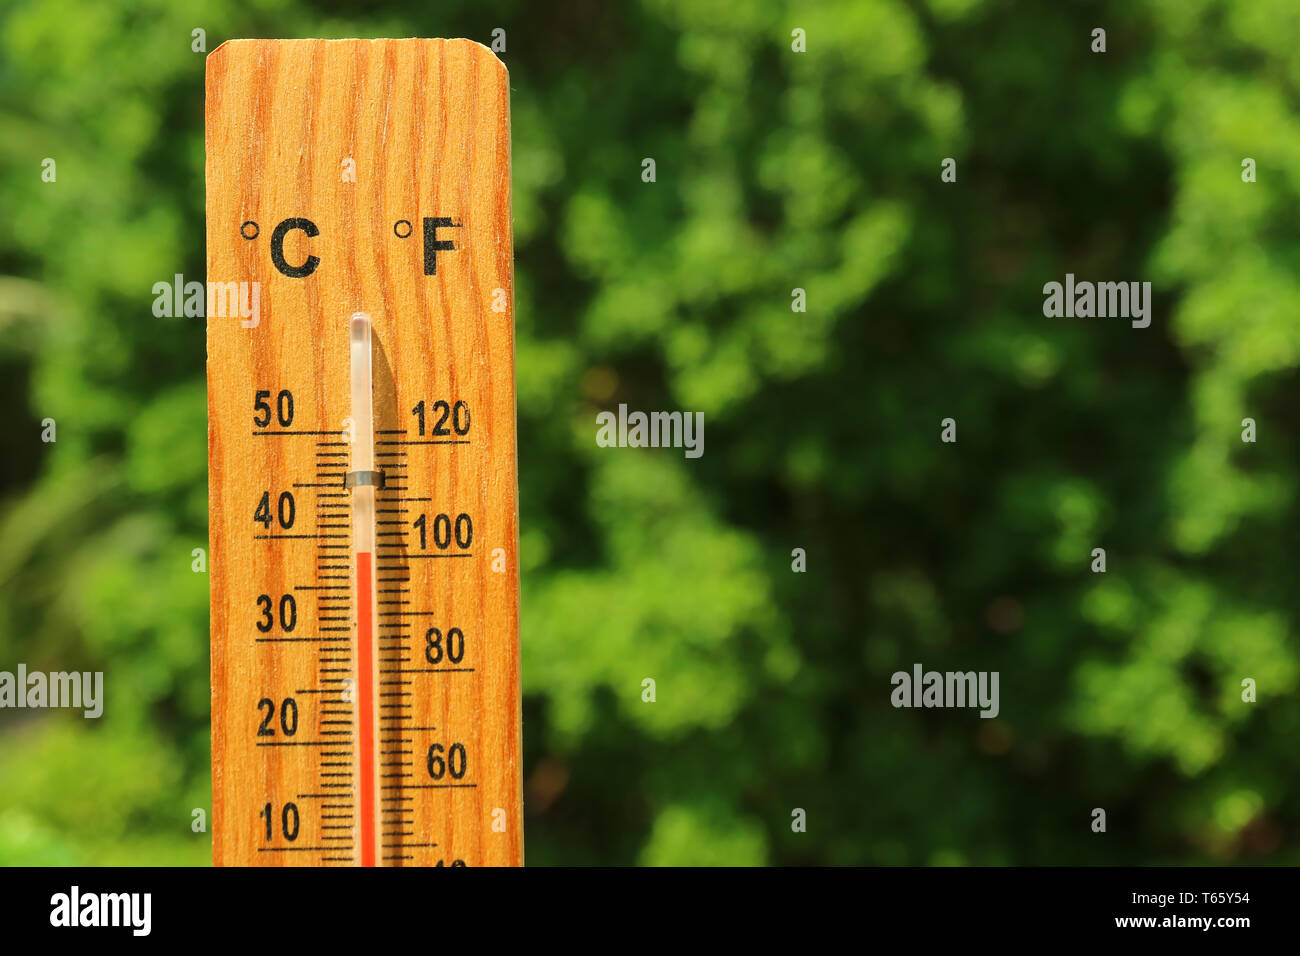 Closeup a wooden thermometer against green foliage showing high temperature - Stock Image